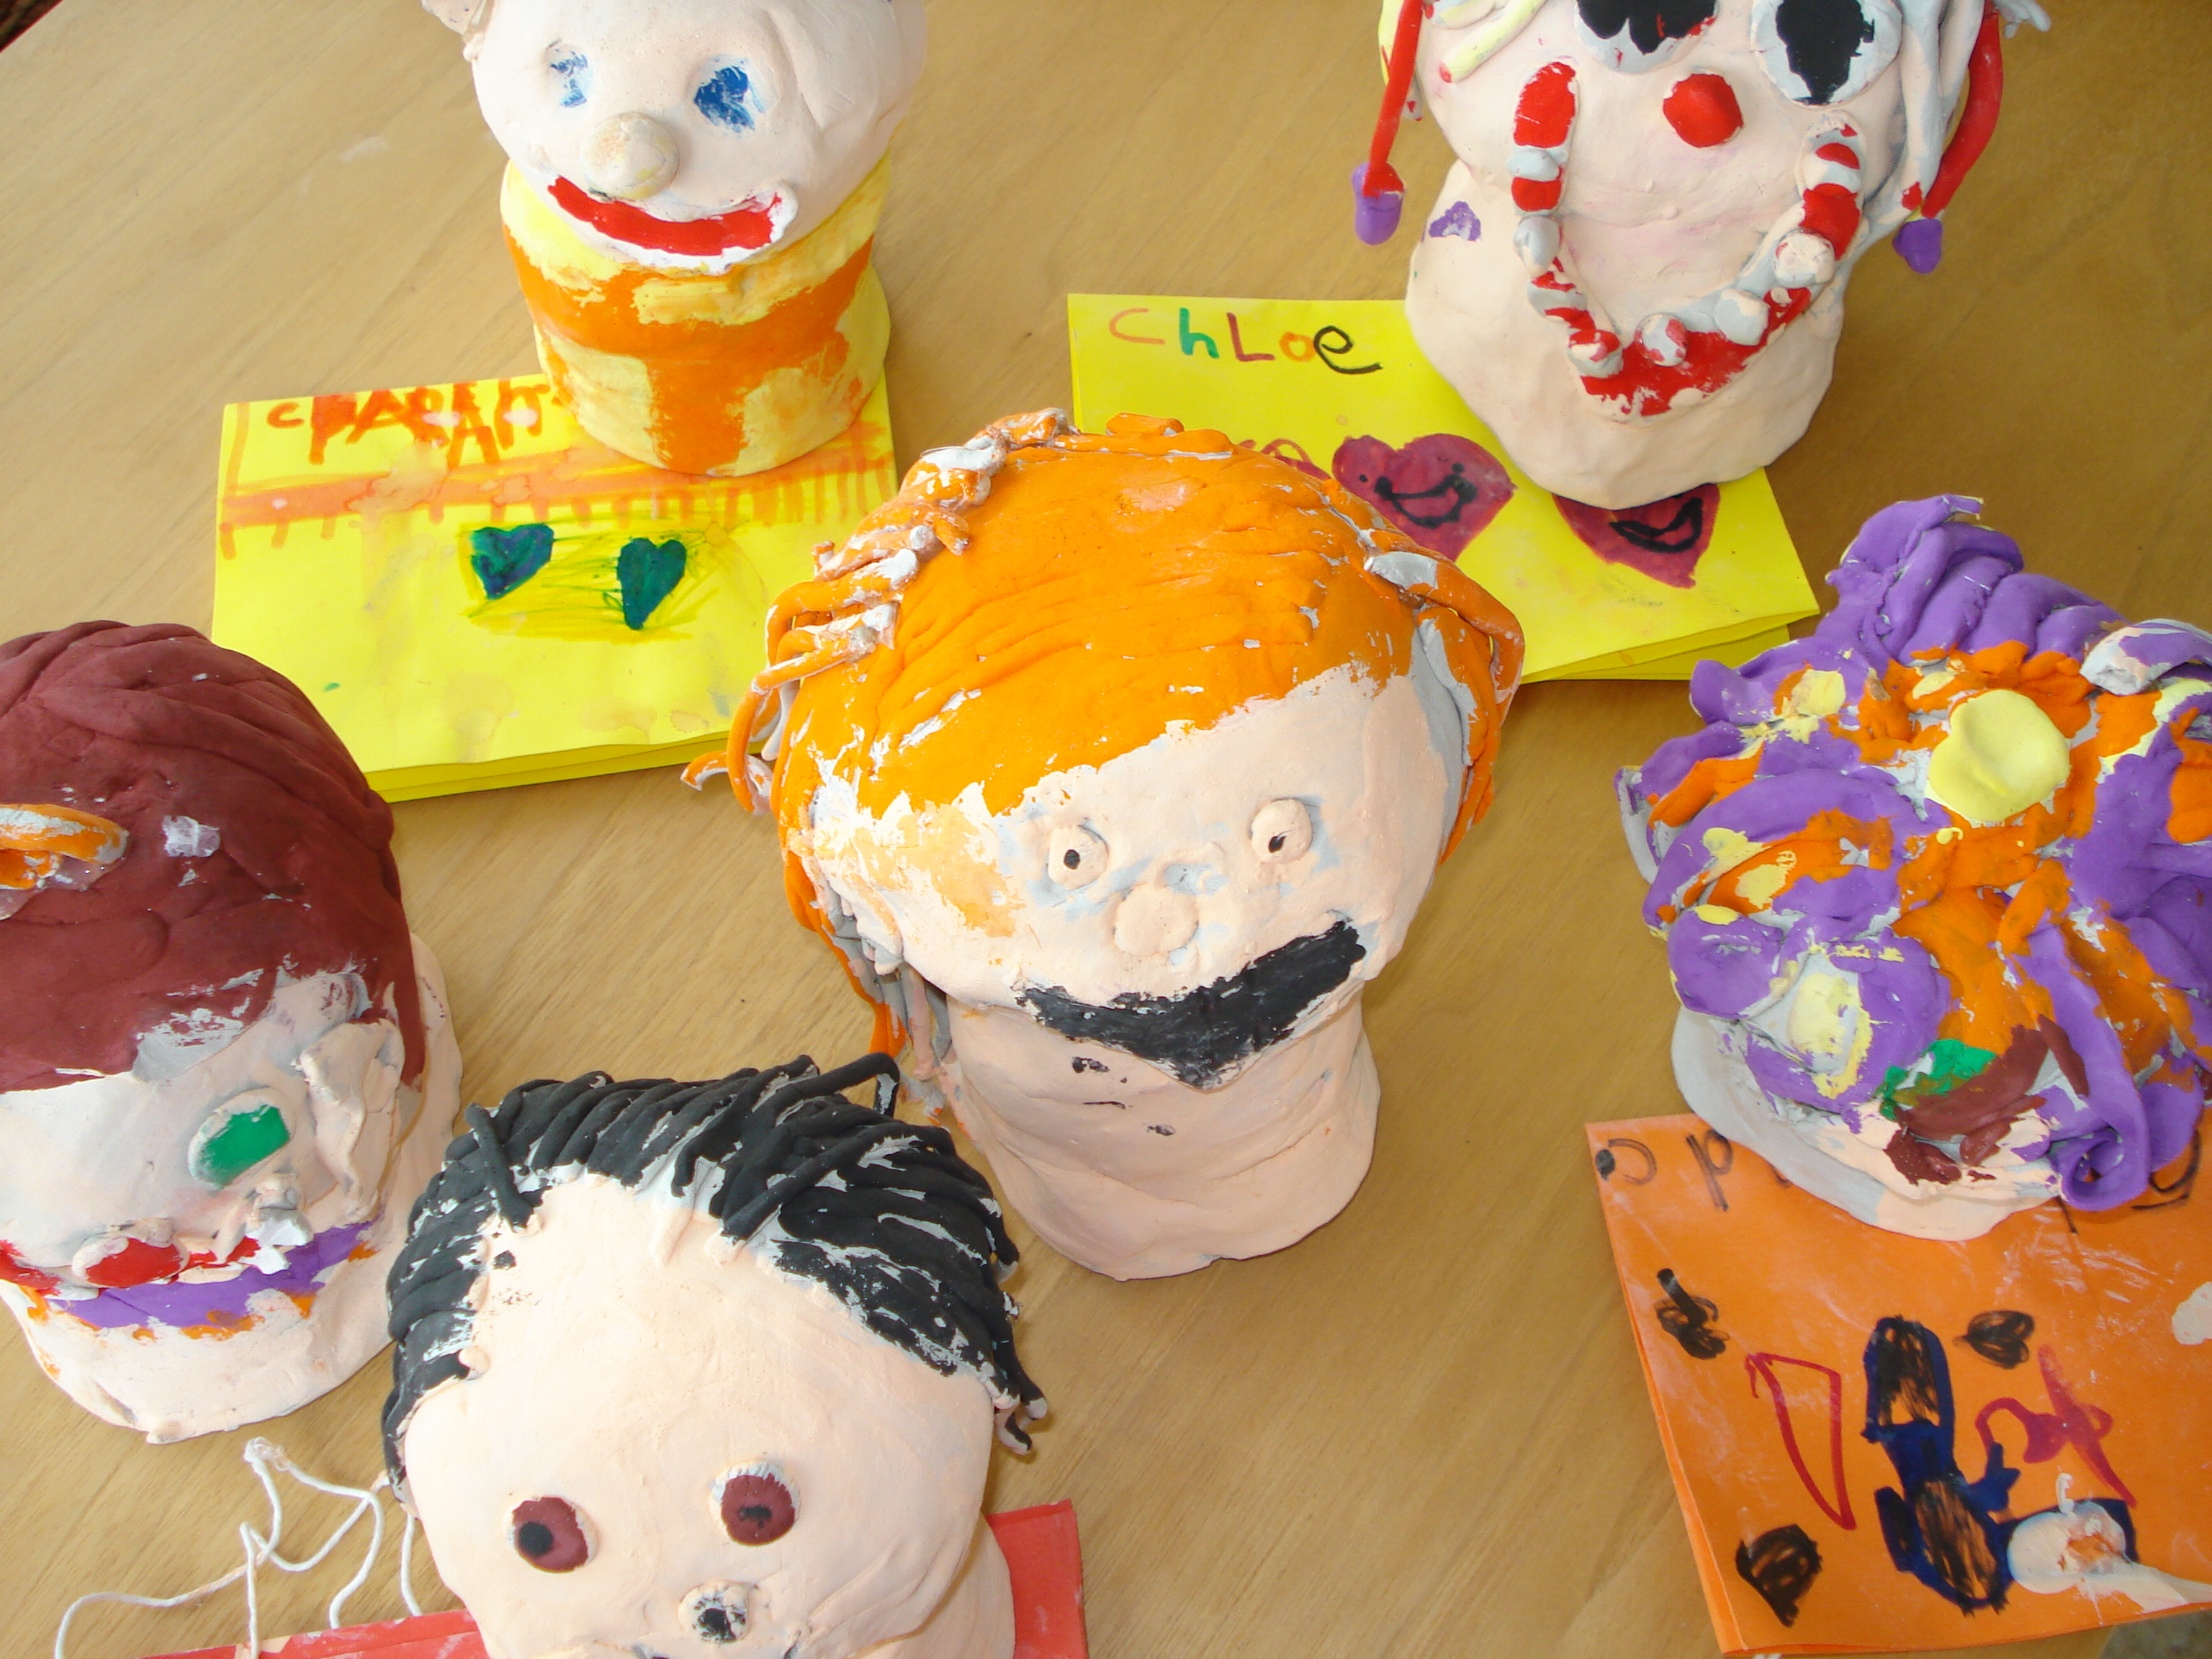 Clay Sculptures by 4-7 year olds